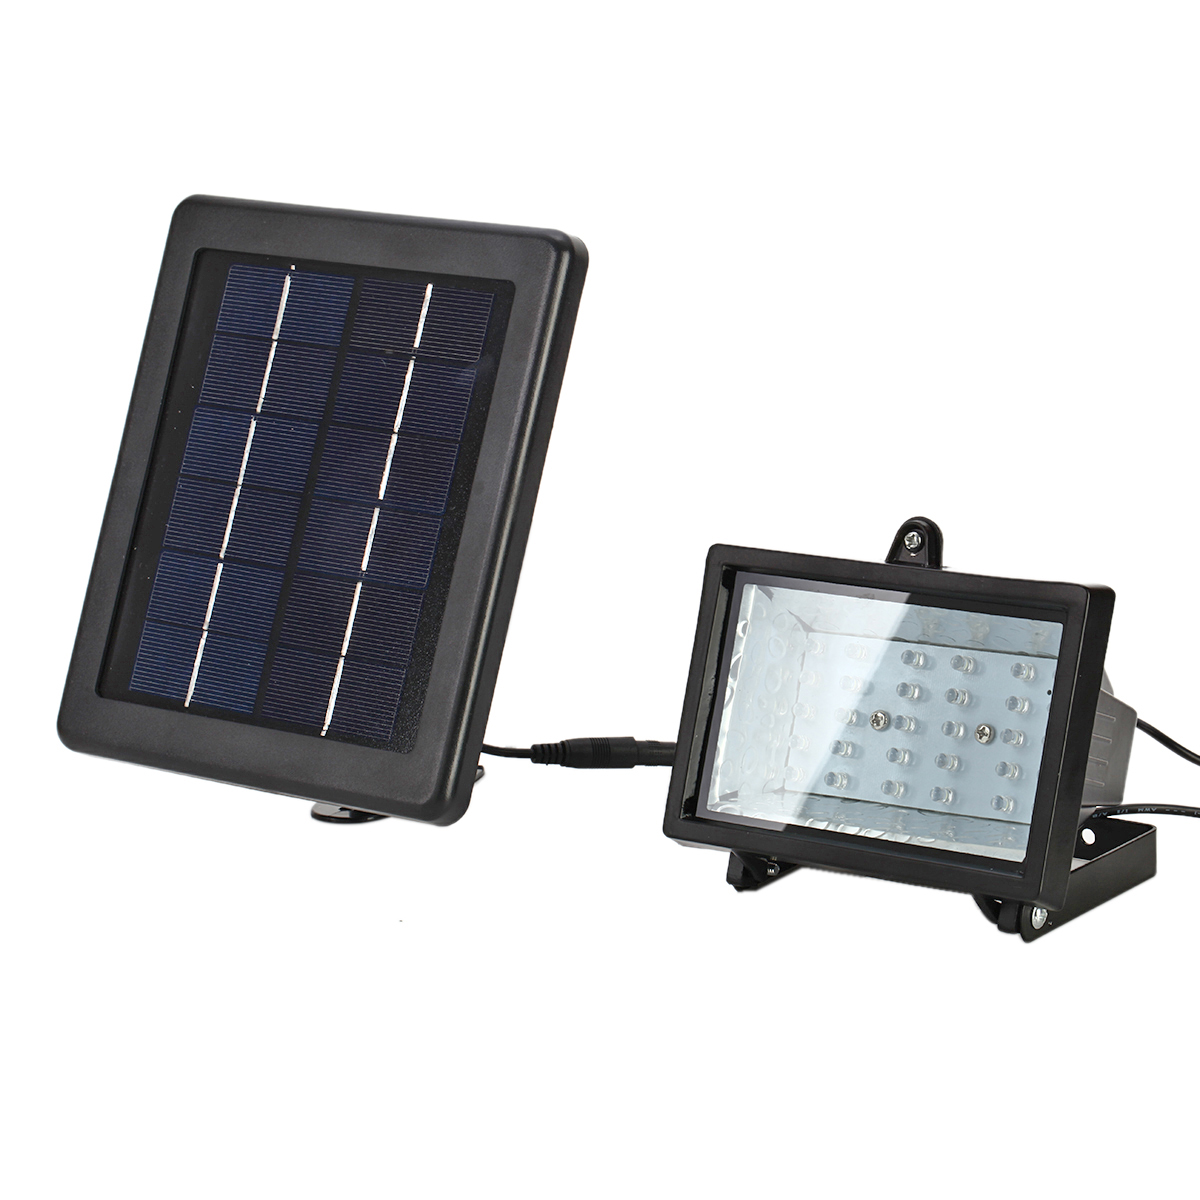 30 LED Solar Powered Spot Light Floodlight Lamp For